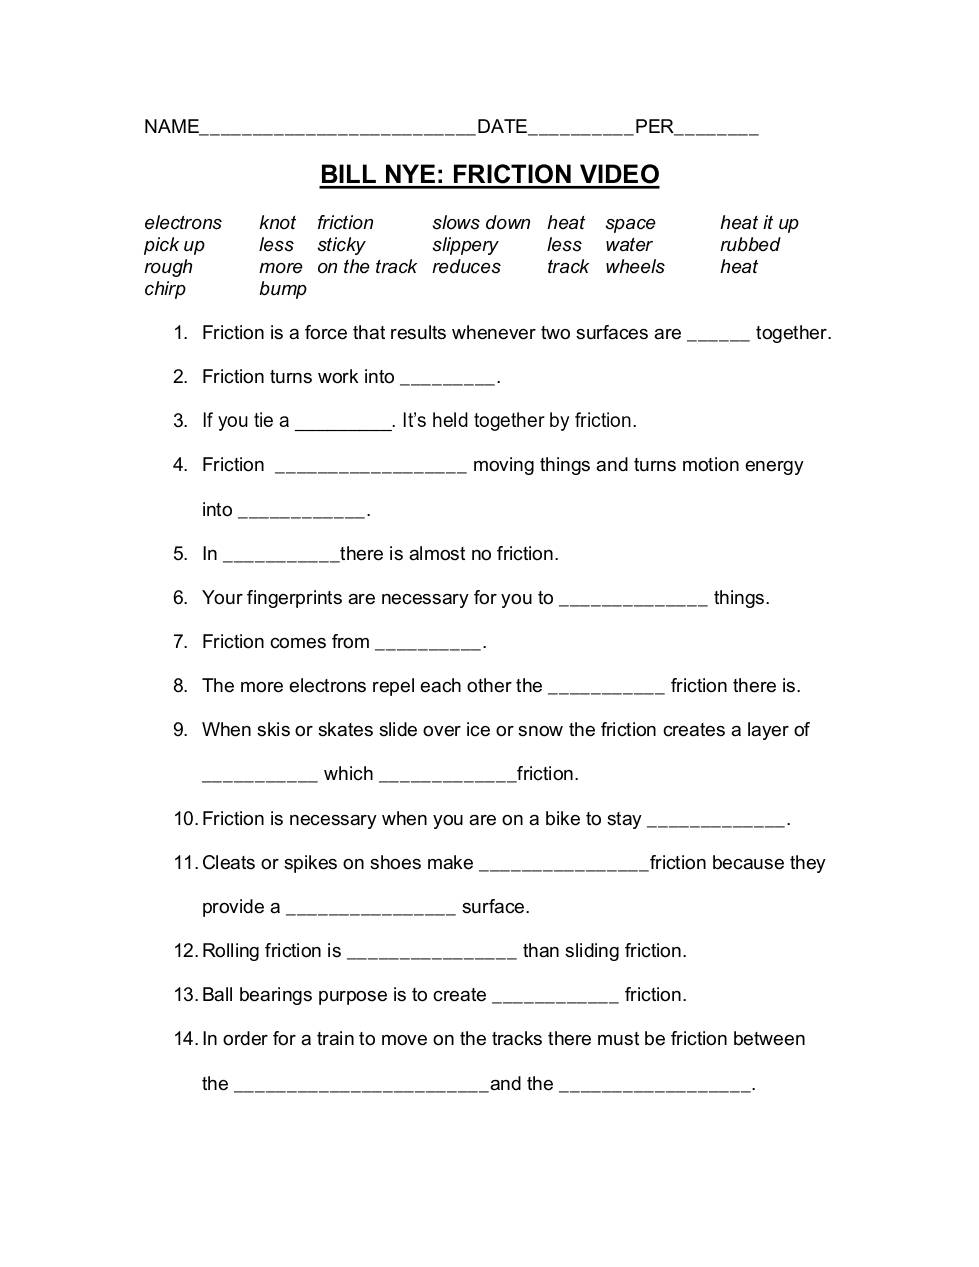 Free Worksheets bill nye food web worksheet : Bill Nye Worksheet - Geersc